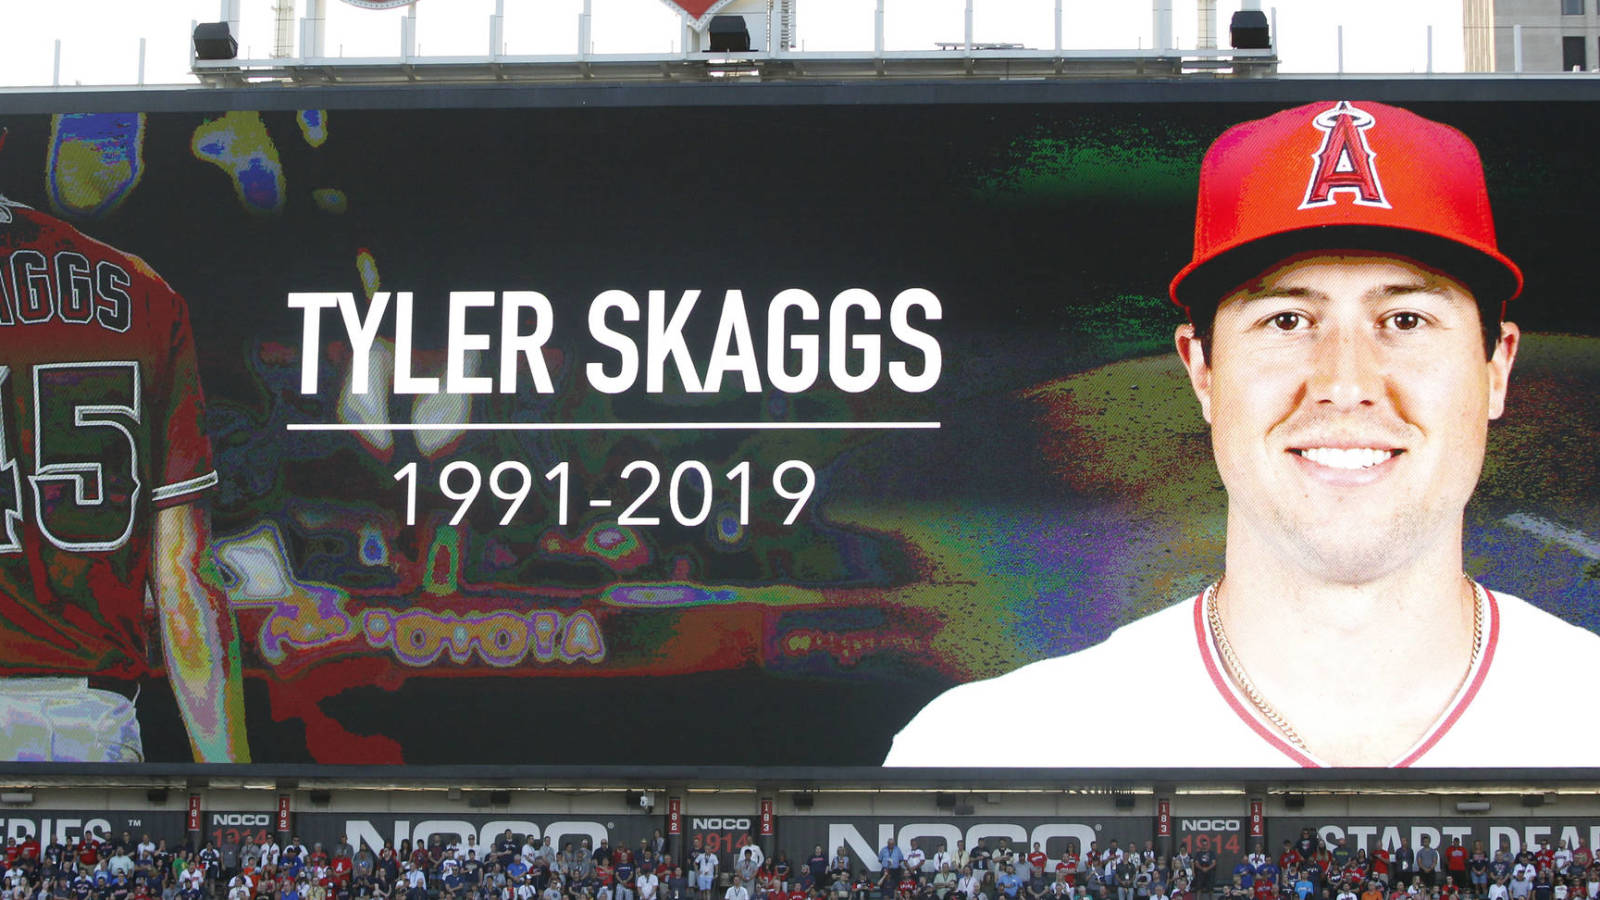 Former Angels employee indicted for distributing fentanyl to Tyler Skaggs